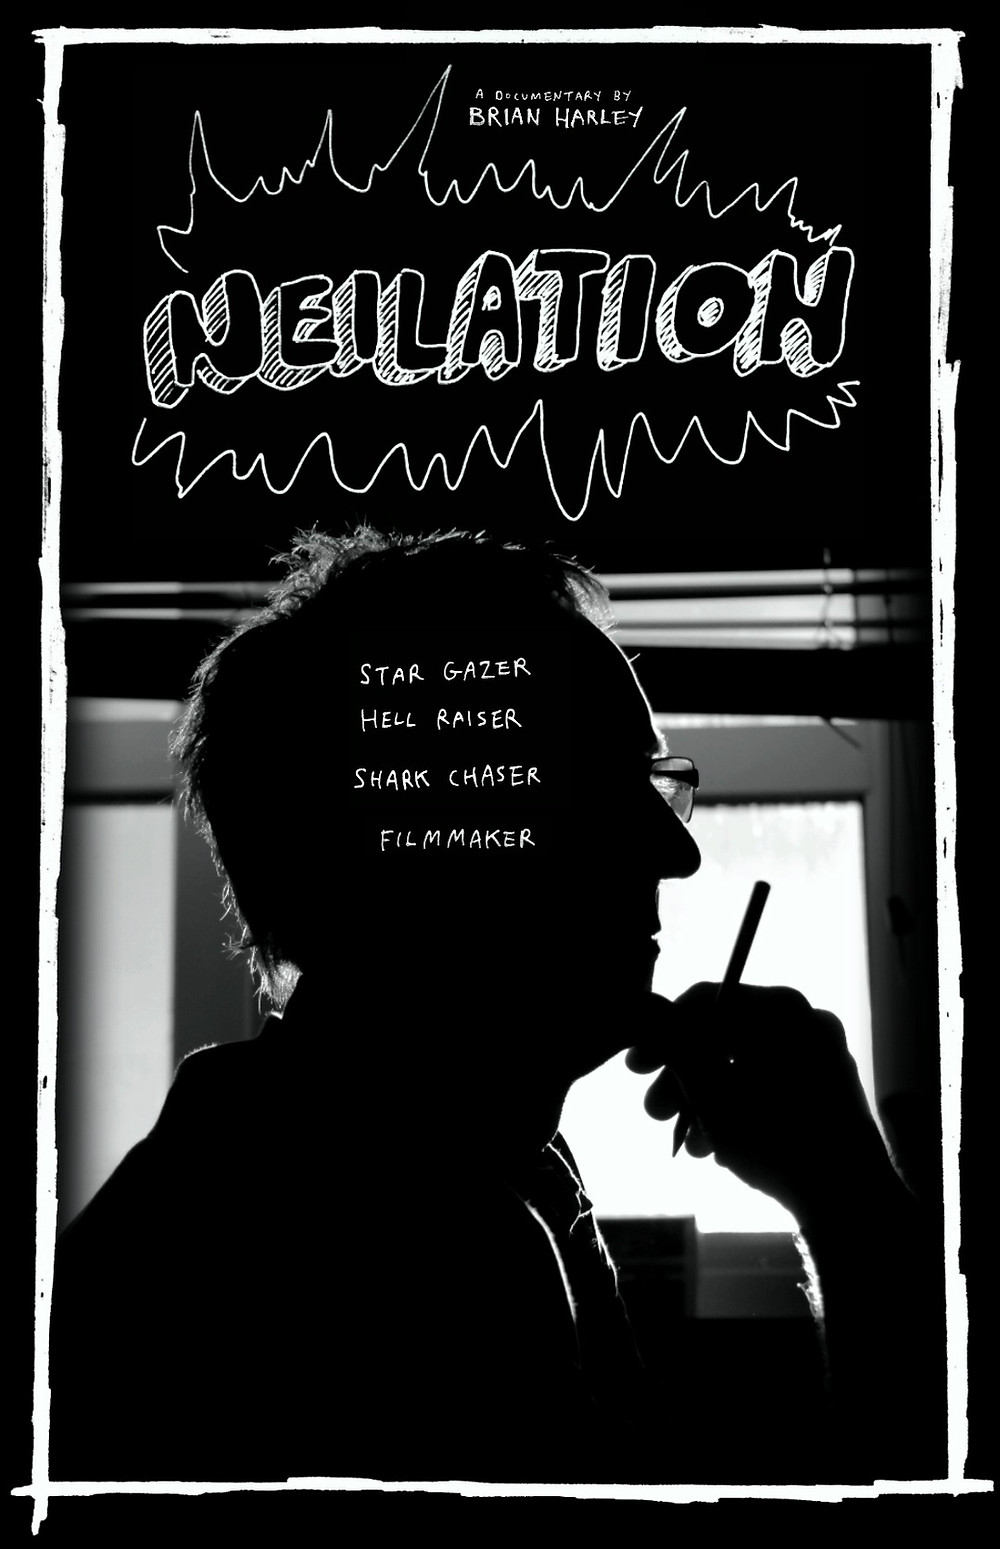 Poster for Neilation showing character.